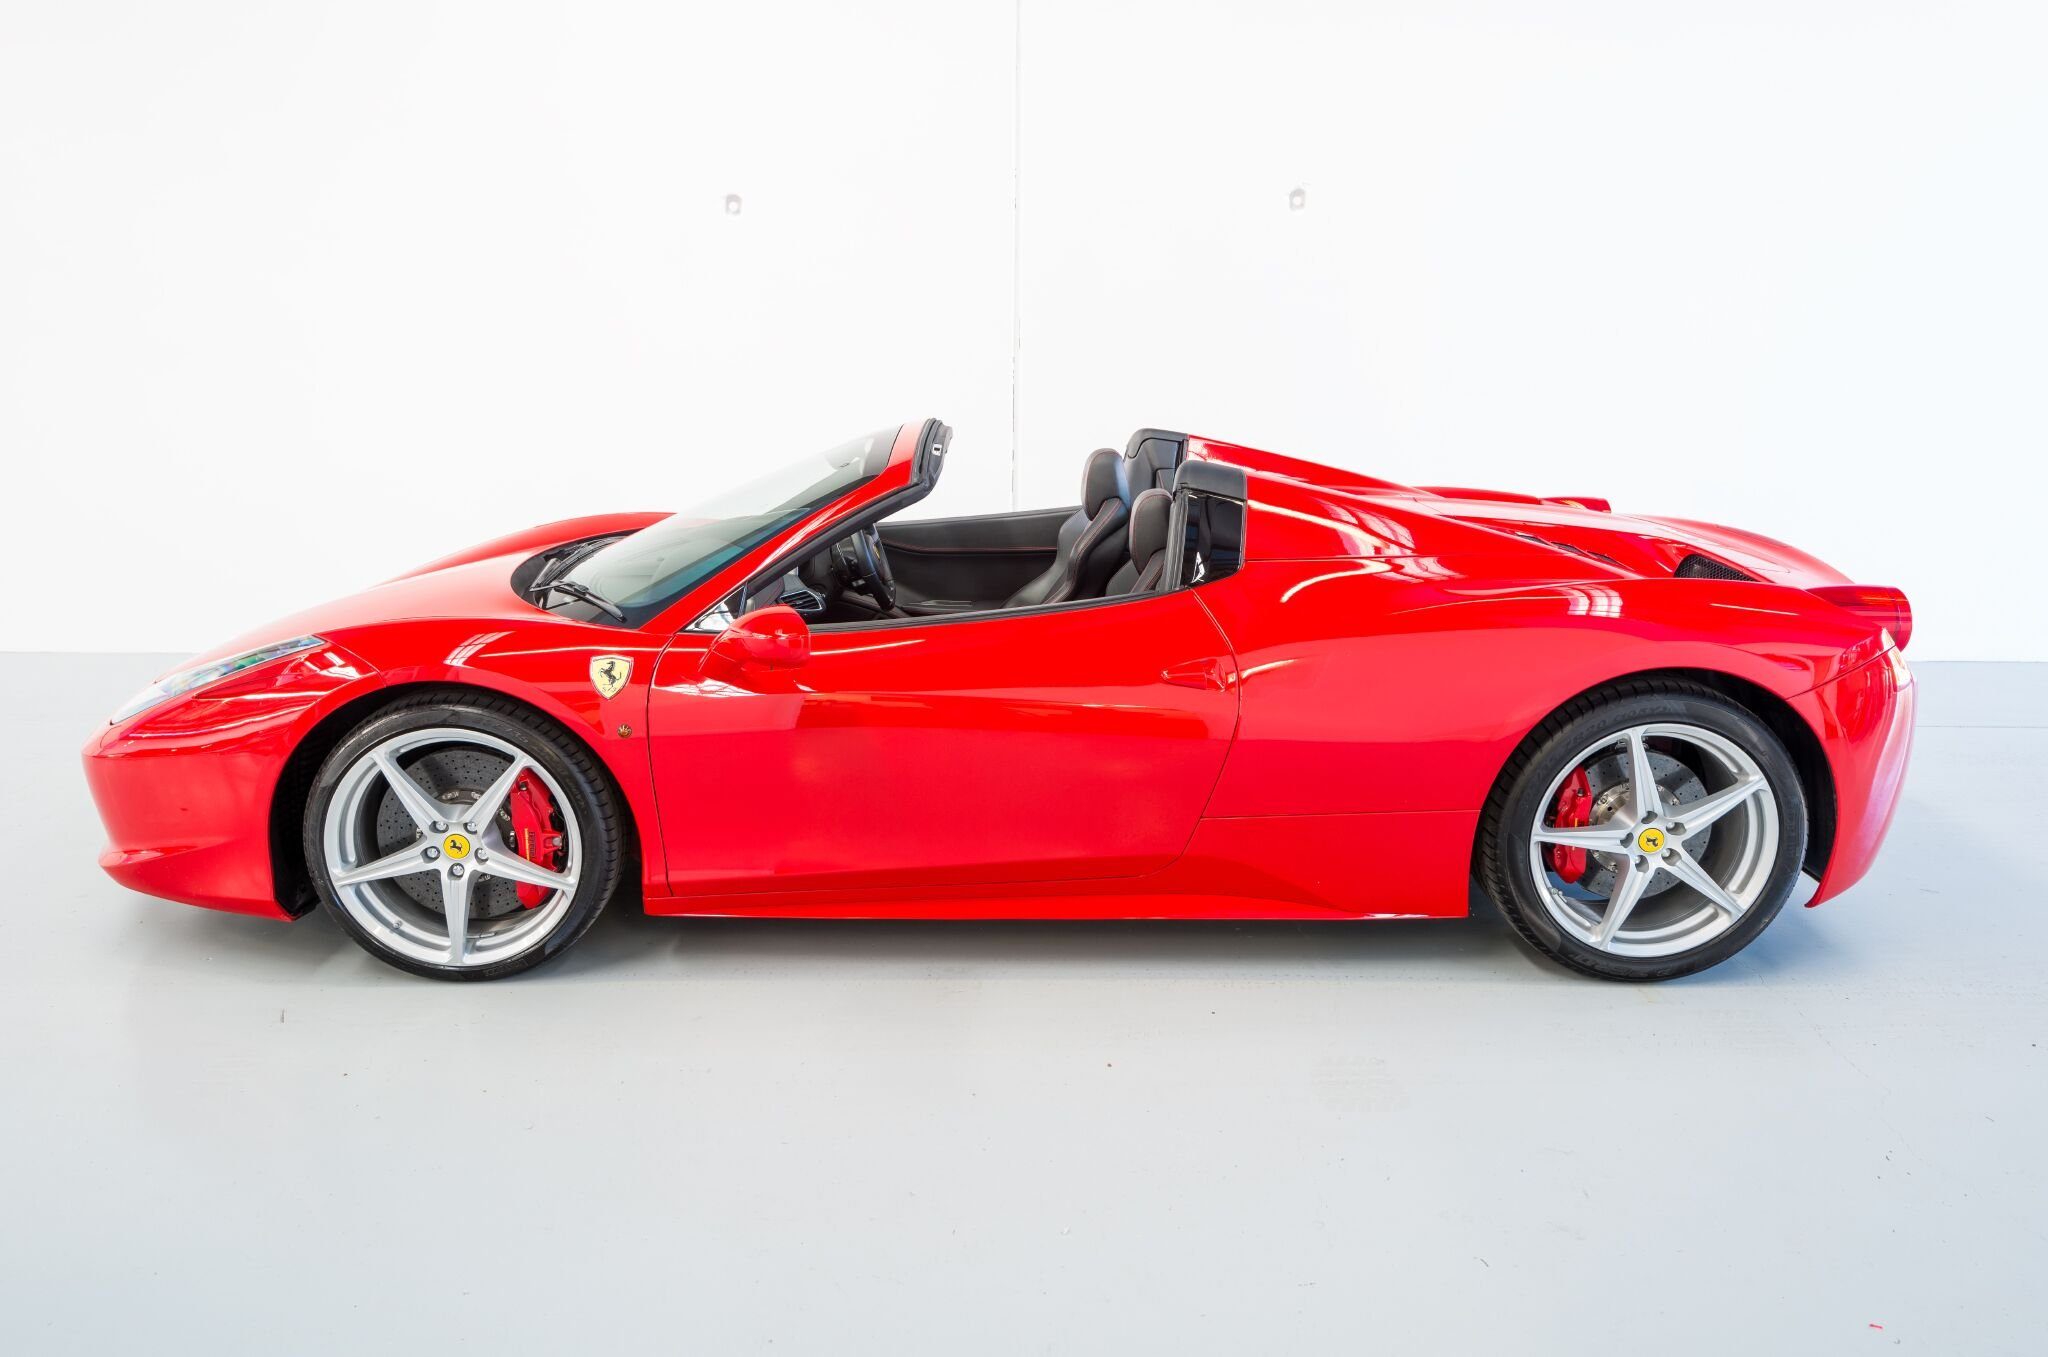 Ferrari 488 Spider with full body XPEL wrap in the Winguard Studio